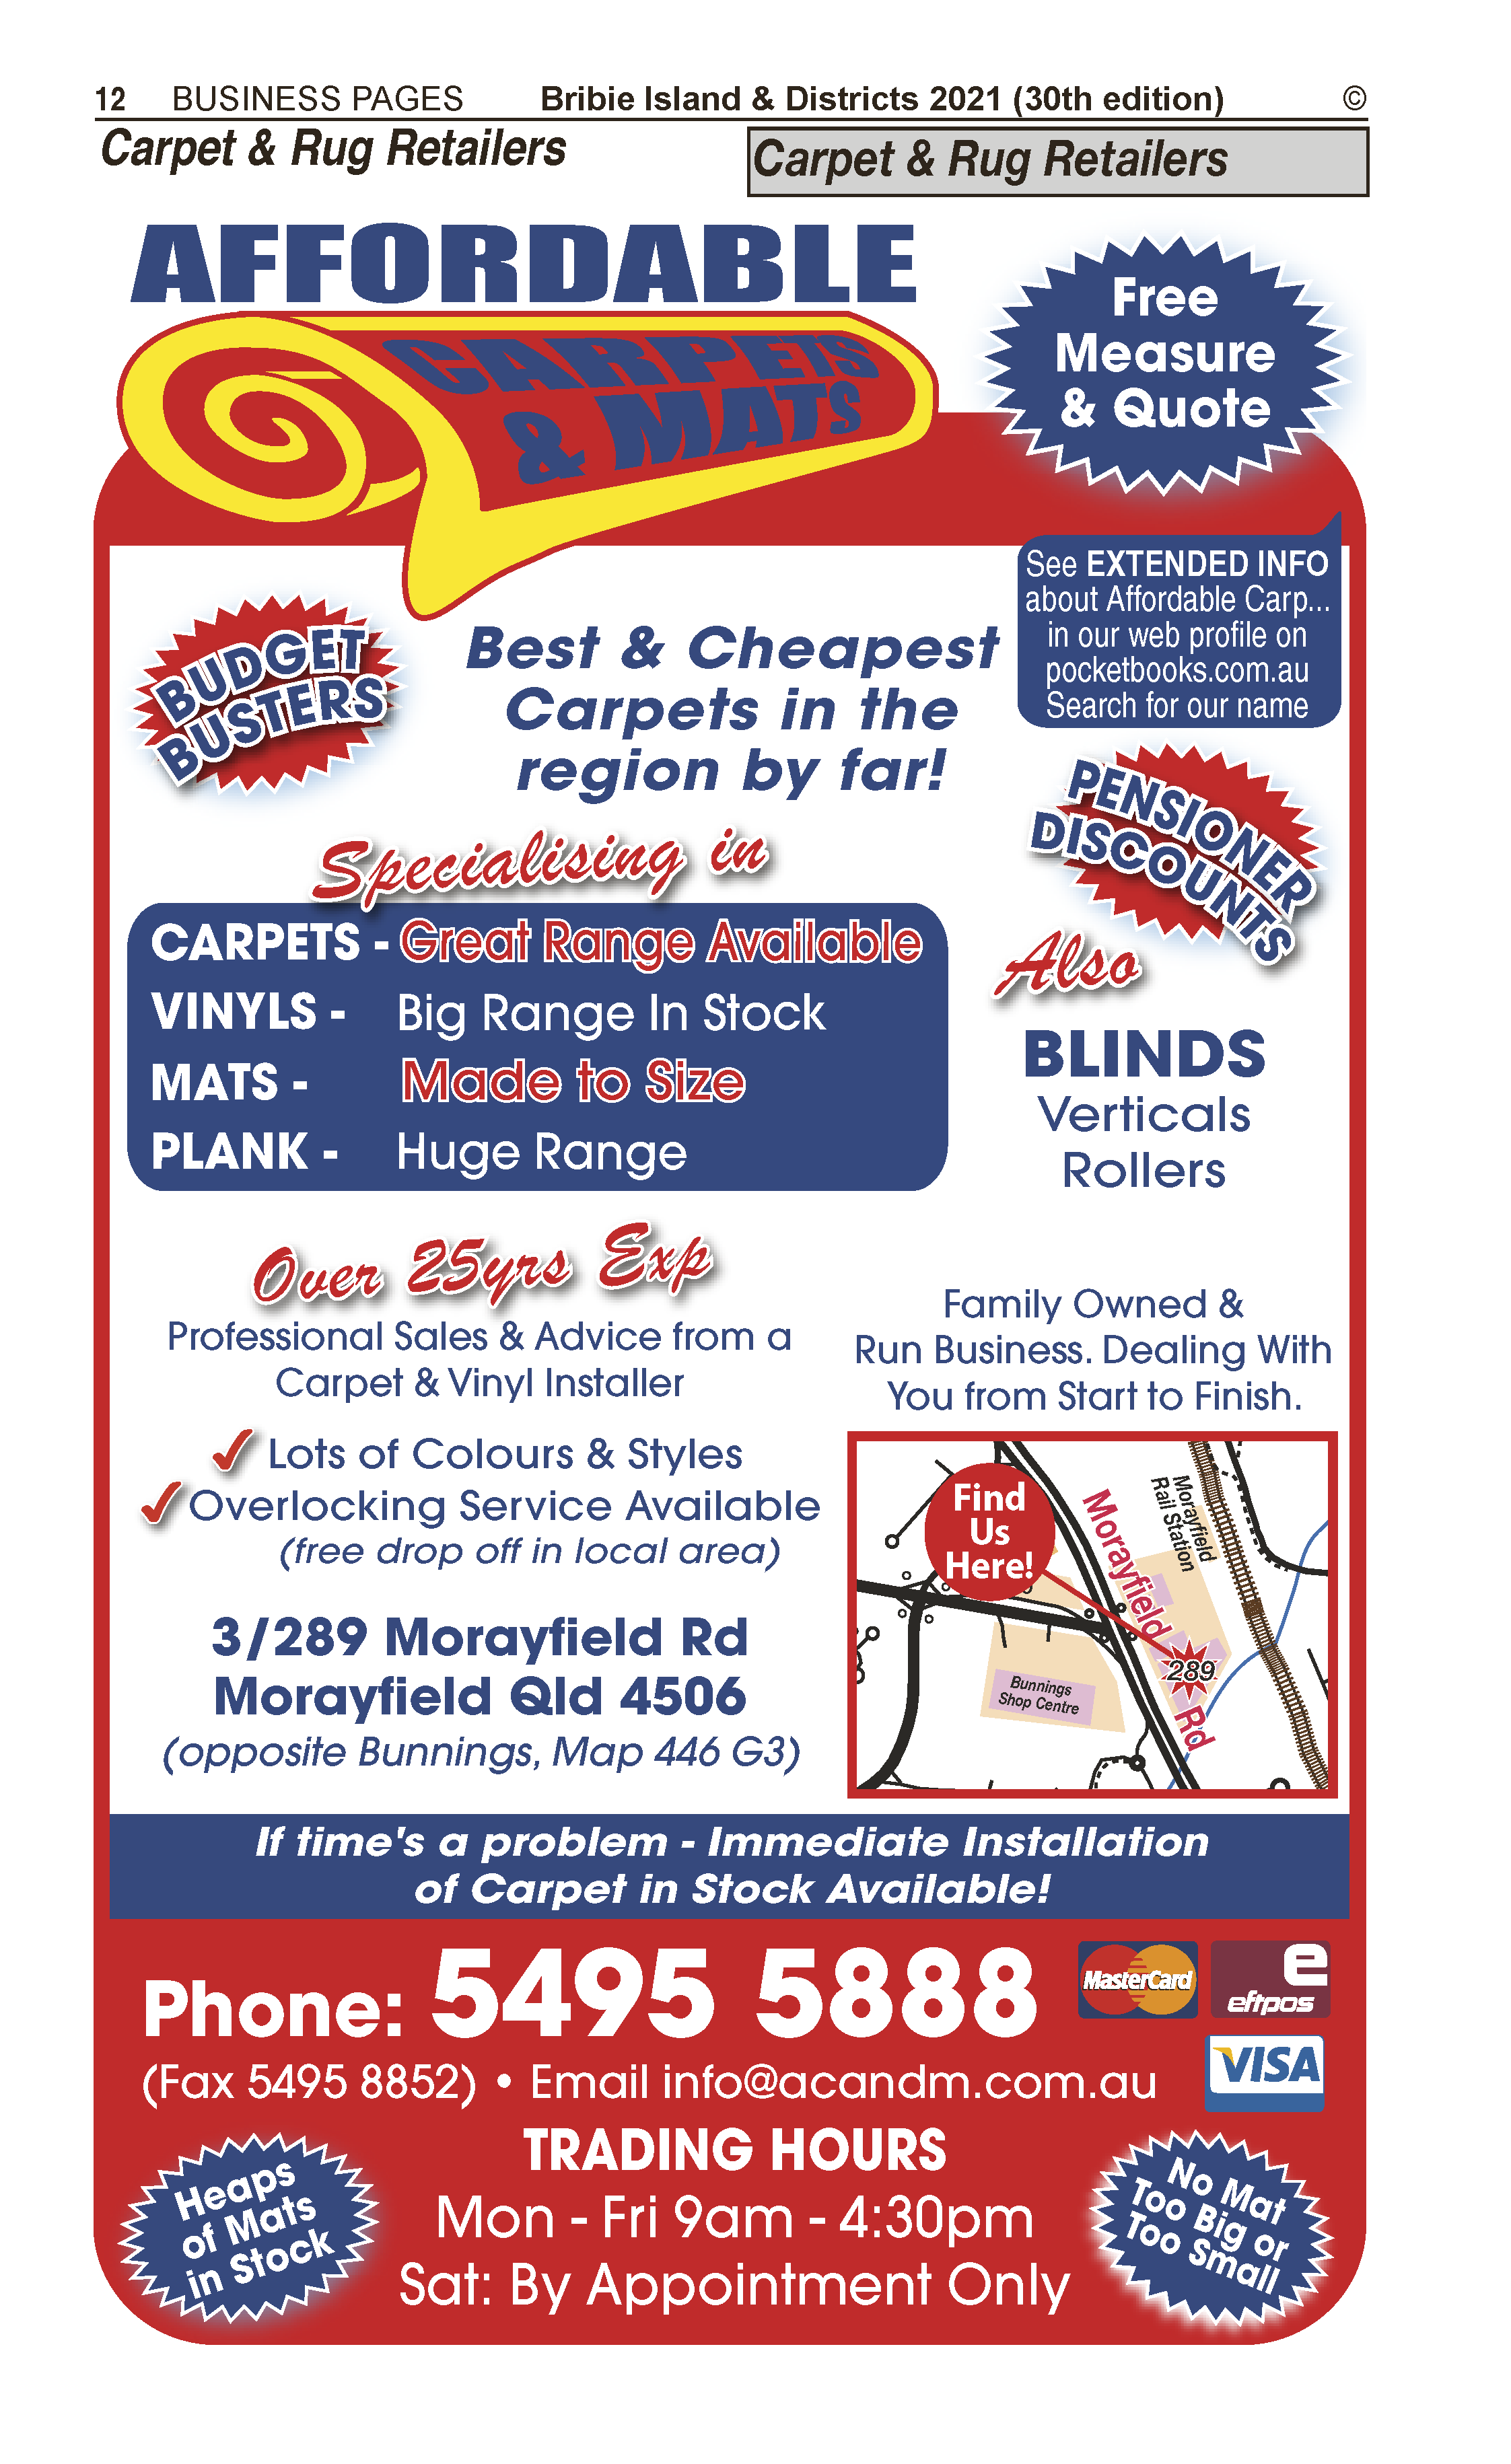 Affordable Carpets & Mats | Carpet & Rugs Retailers in Morayfield | PBezy Pocket Books local directories - page 12